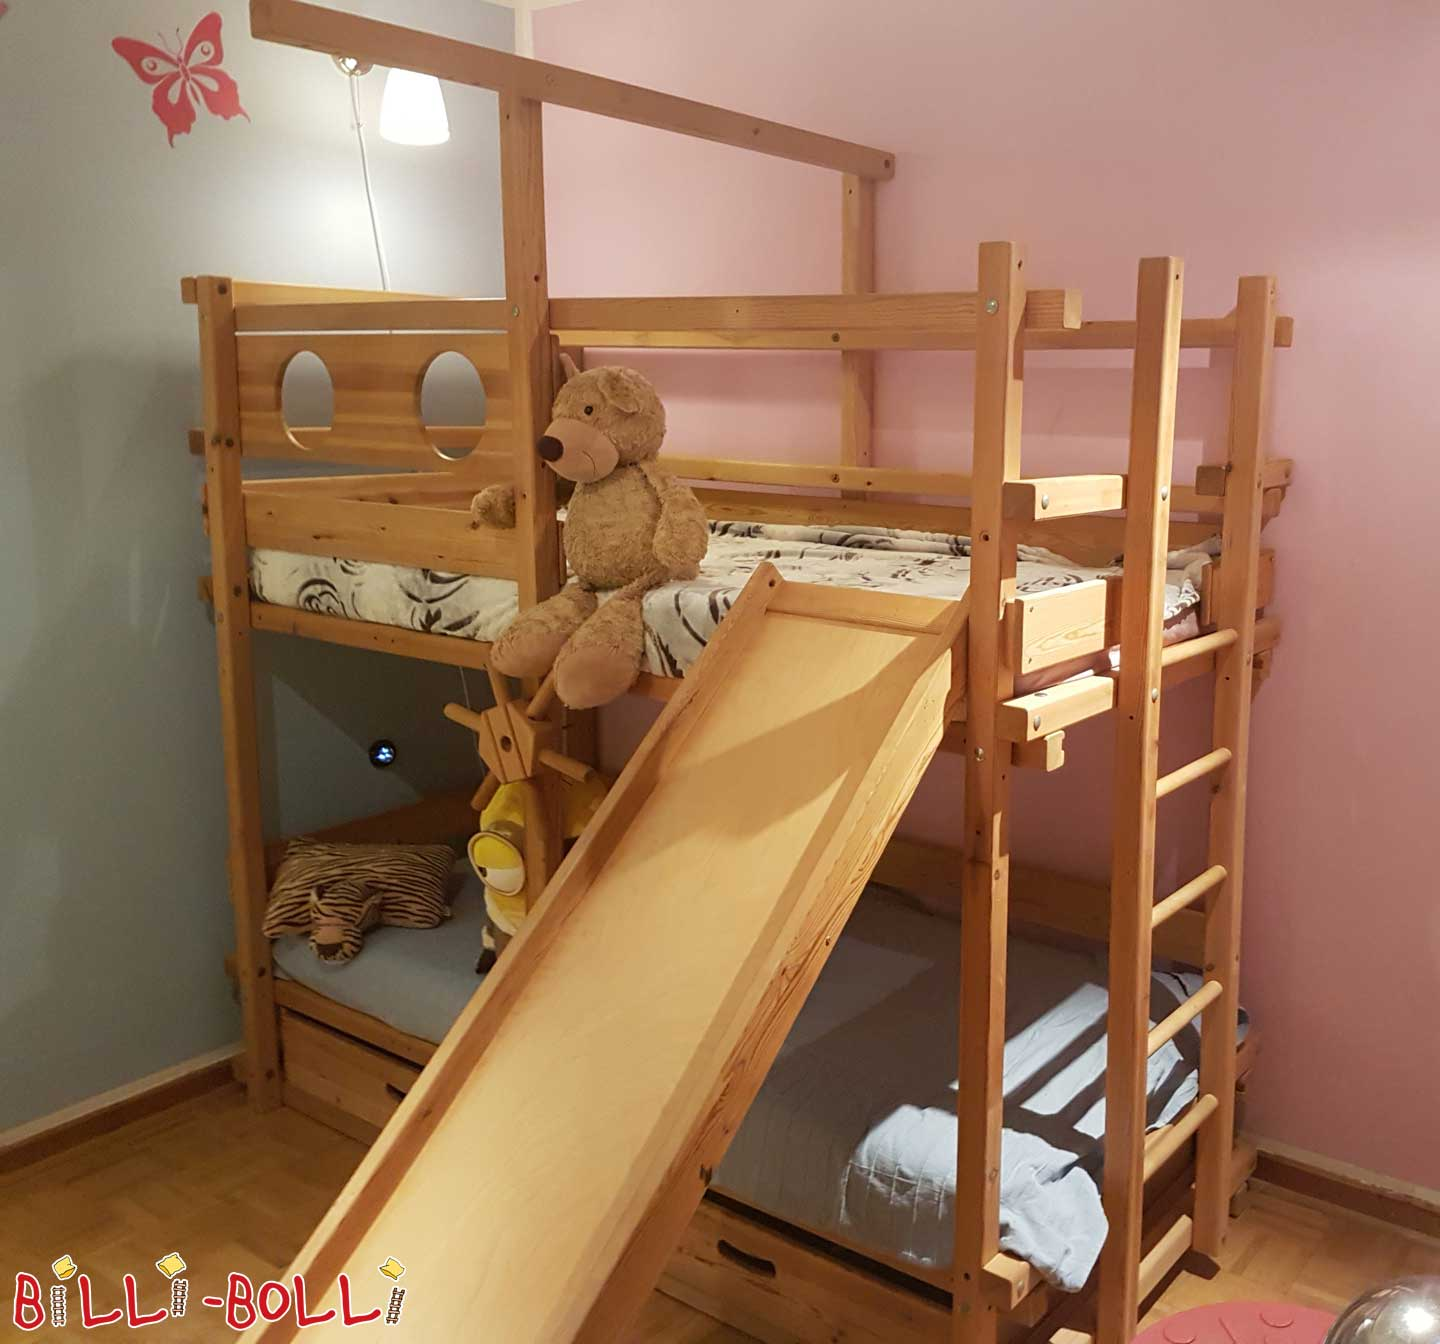 Gullibo bunk bed (second hand bunk bed)